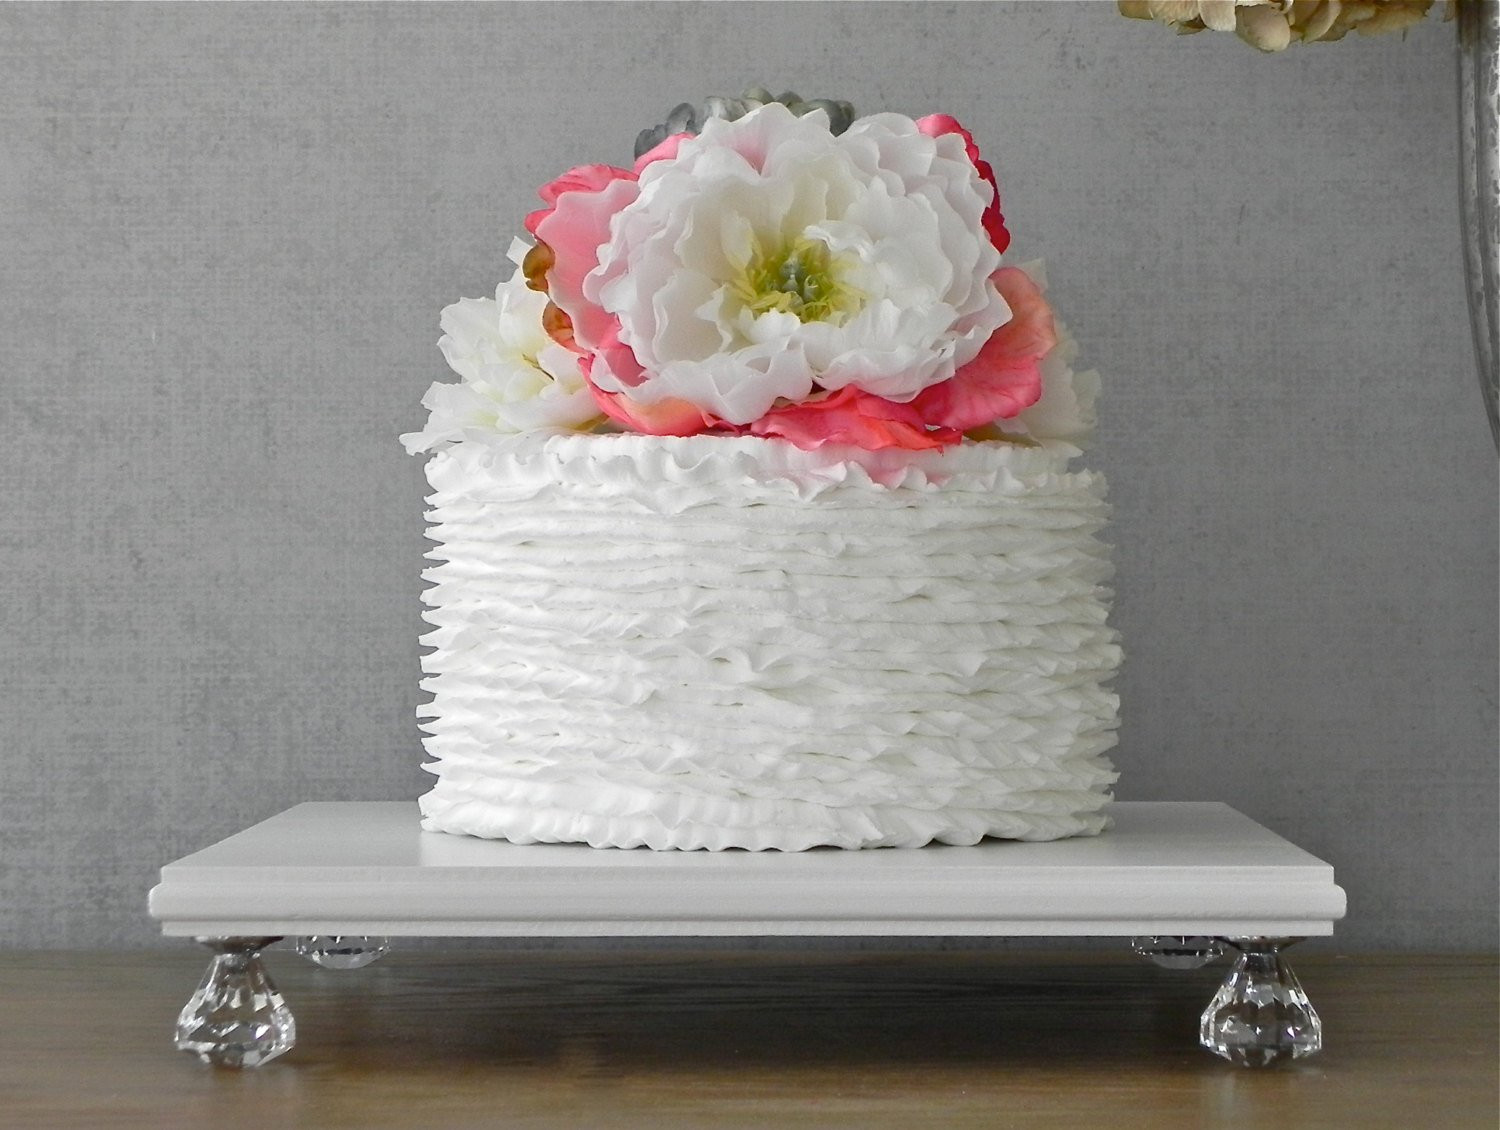 Square Cake Stand For Wedding Cakes  READY TO SHIP 16 Inch Cake Stand Square Wedding Cake Stand